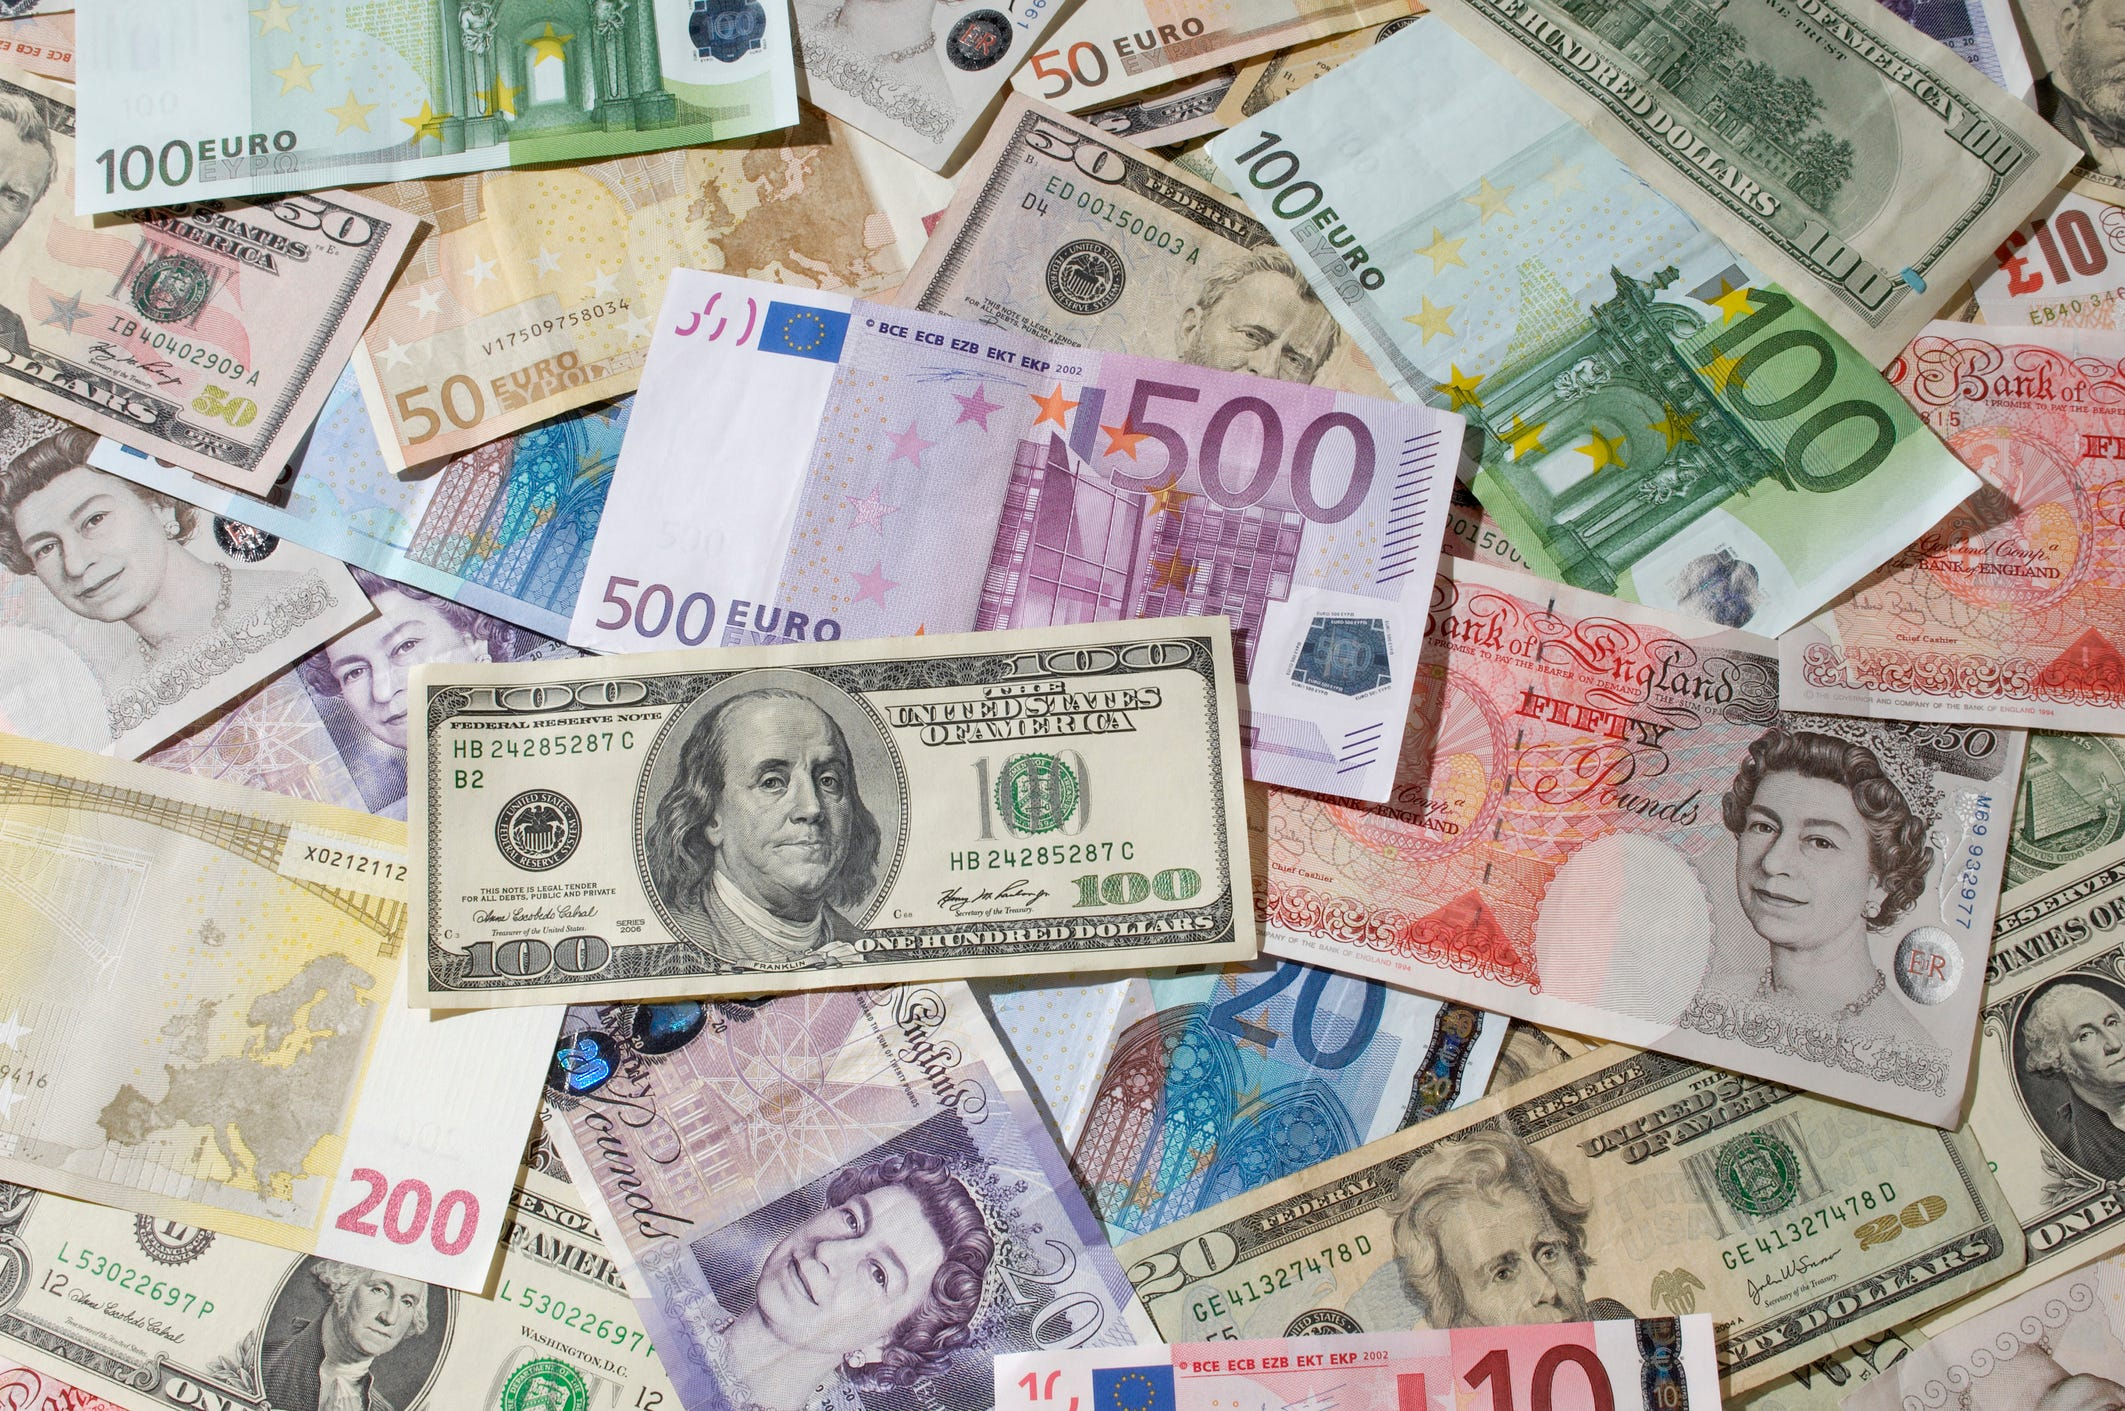 Convert your currency the right way before this holiday